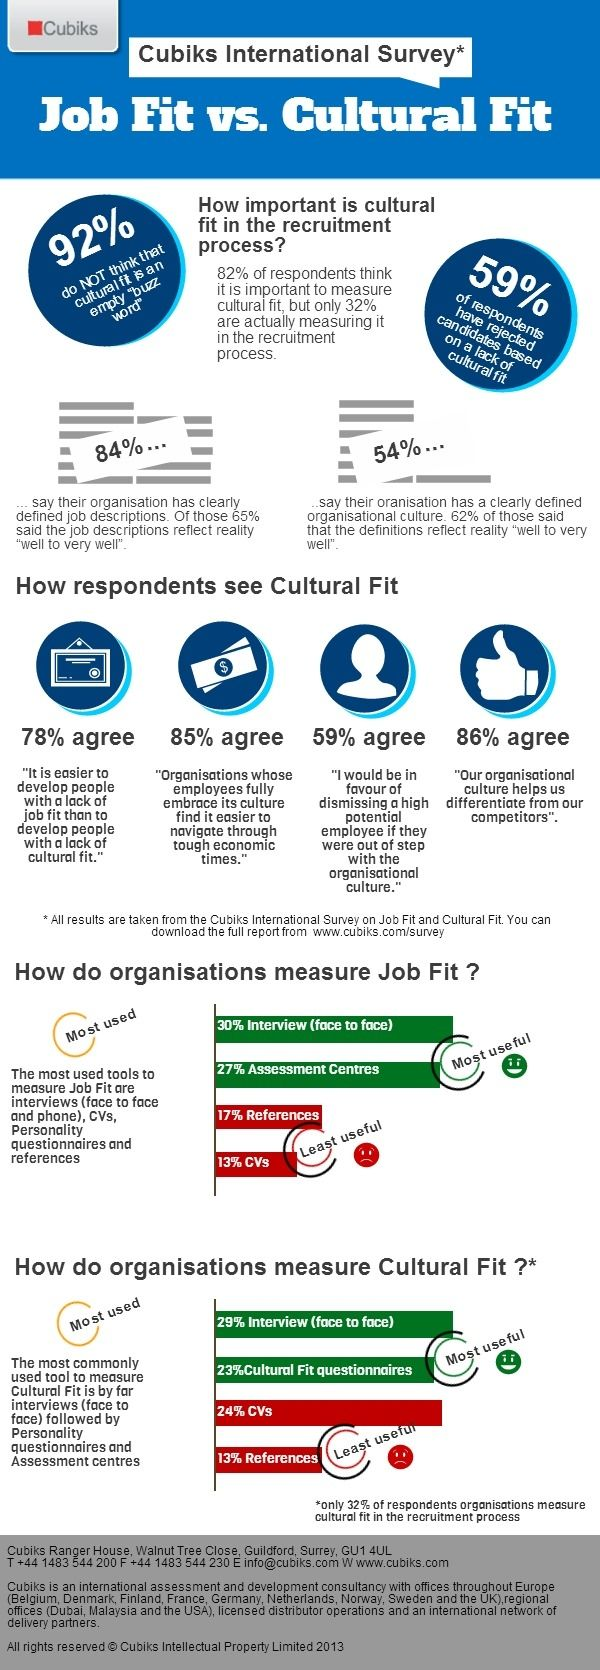 Best Cultural Fit Images On   Change Management